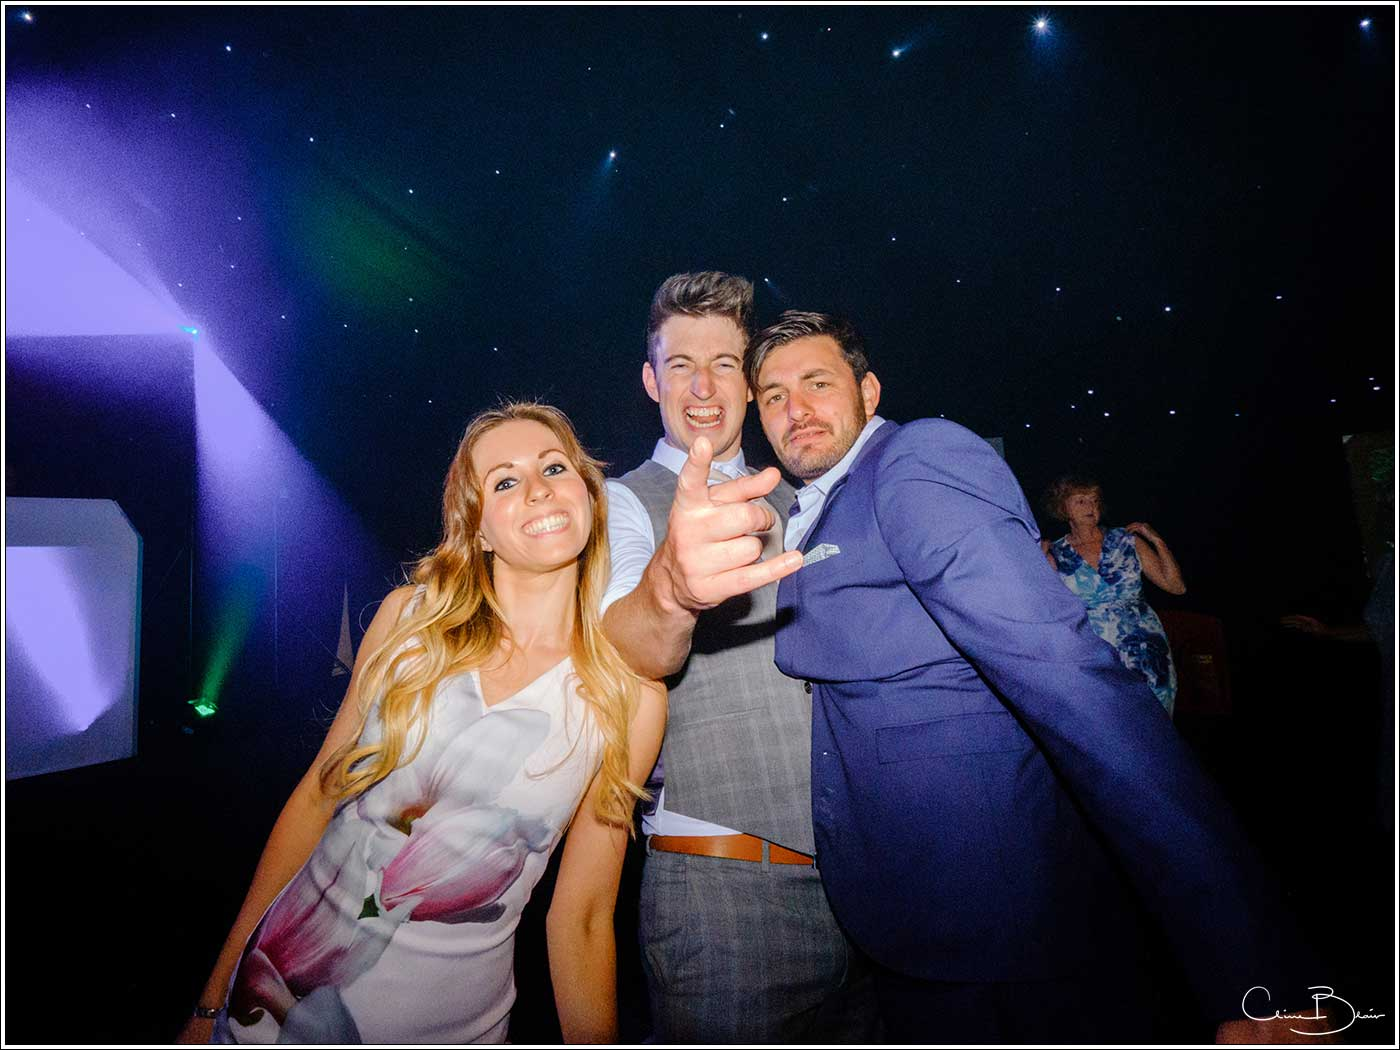 Coombe Abbey wedding photography showing 3 guests playing up to the camera on the dance floor